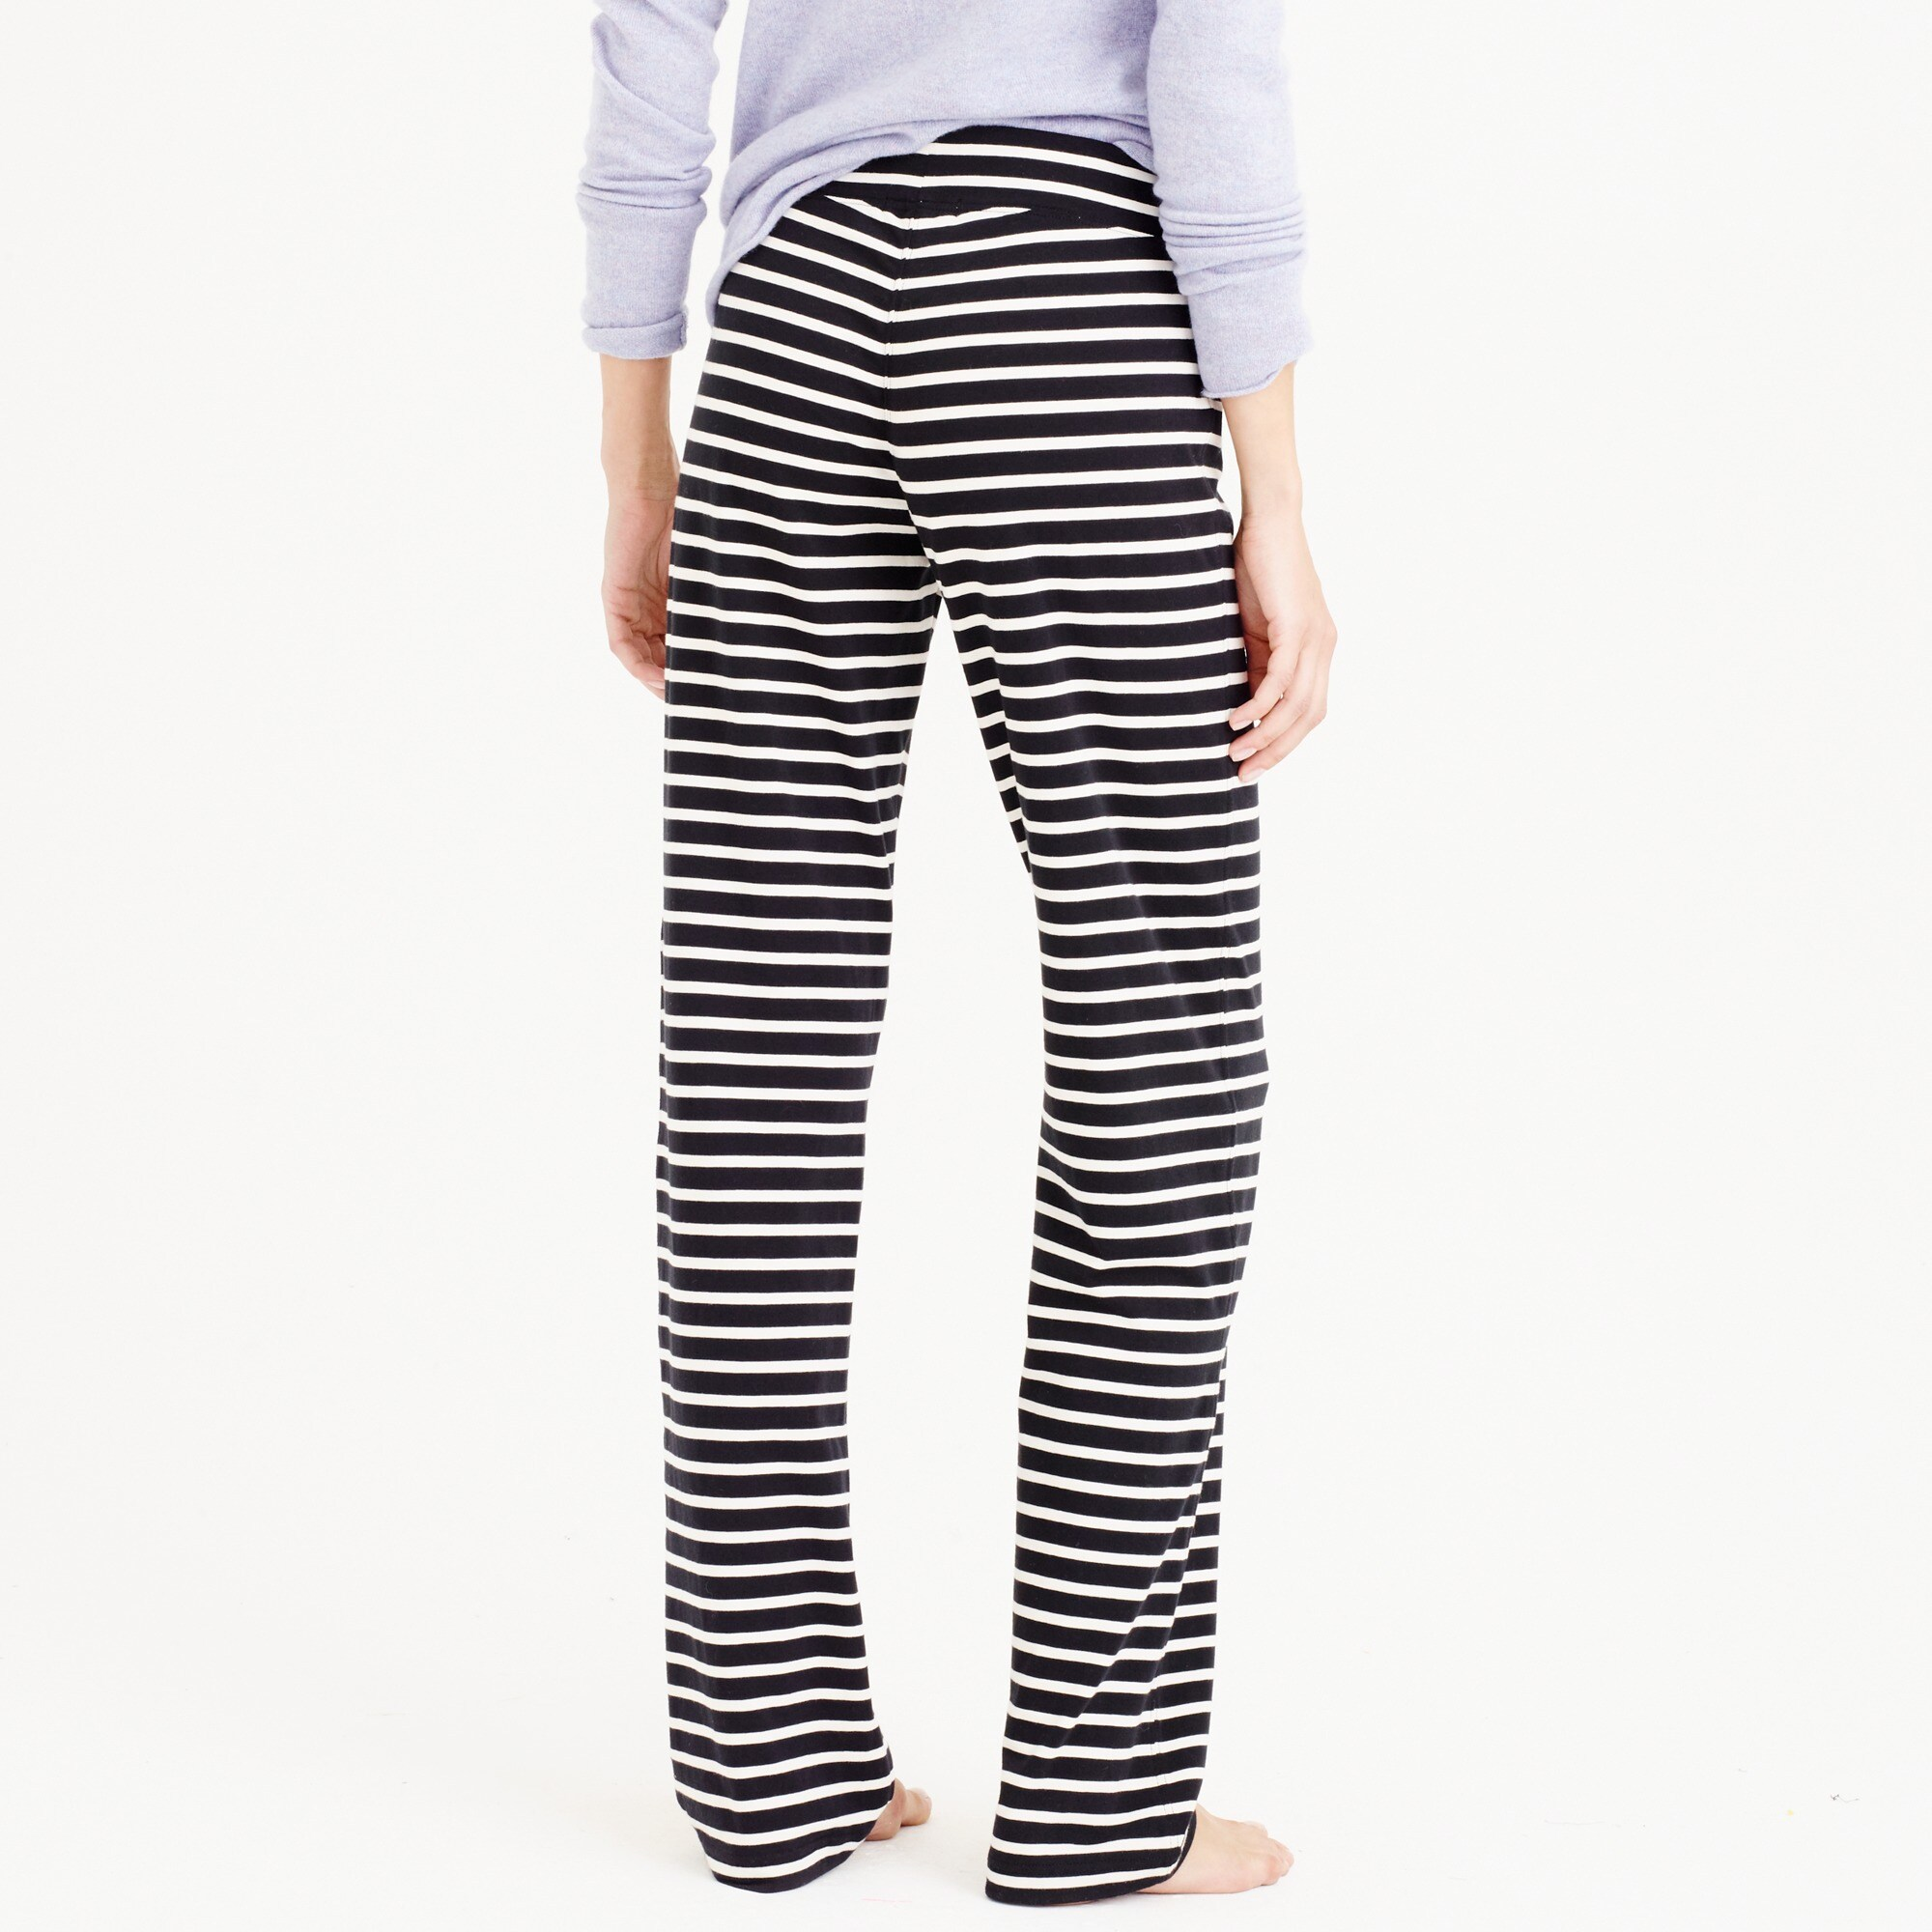 Image 3 for Petite dreamy cotton pant in stripe